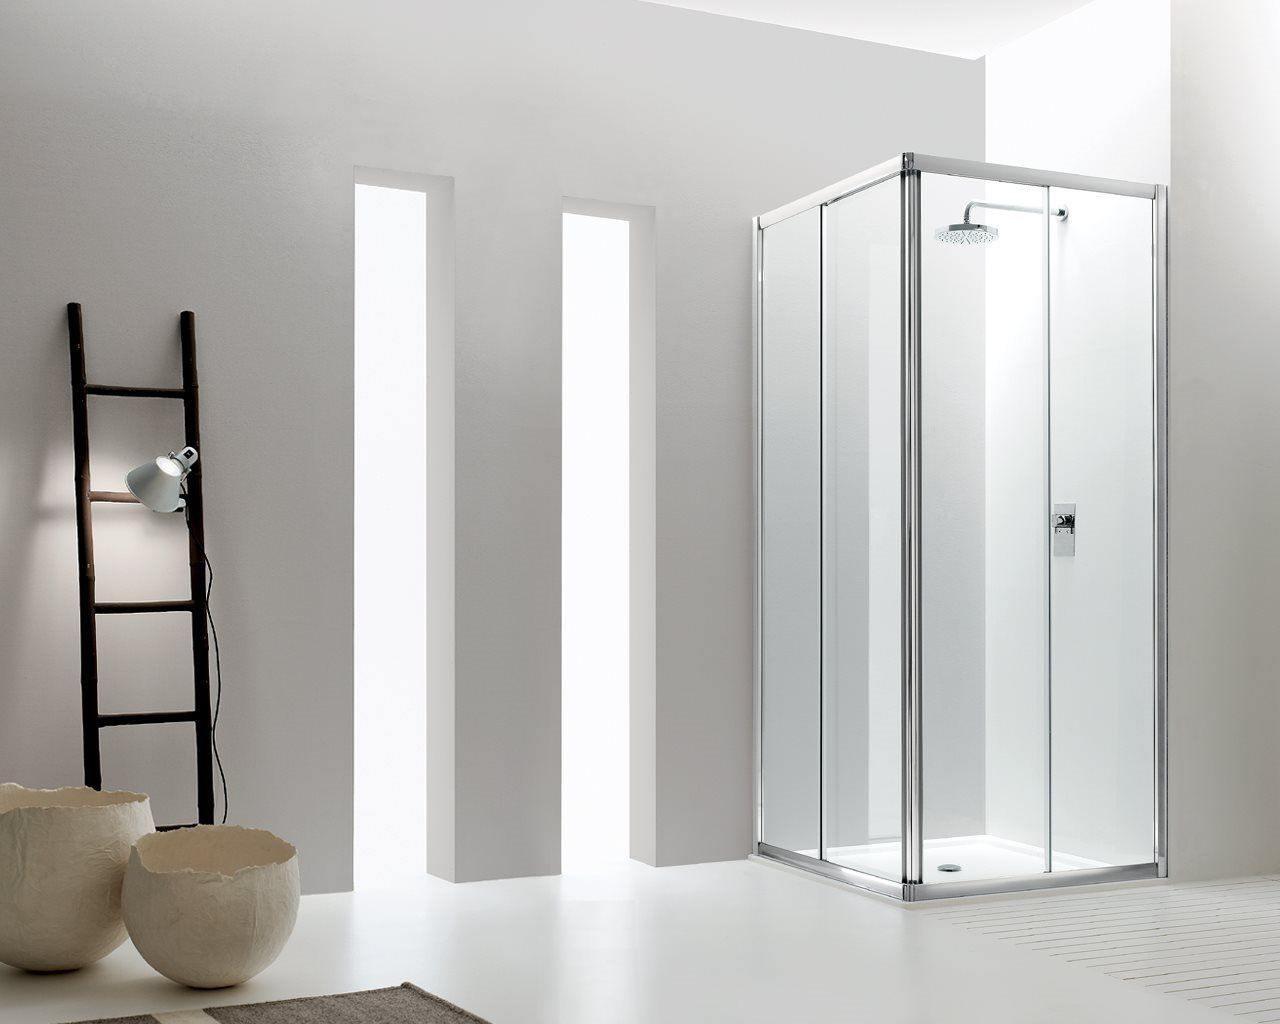 Jolly A Complete Shower Enclosures System Consisting Of Sliding